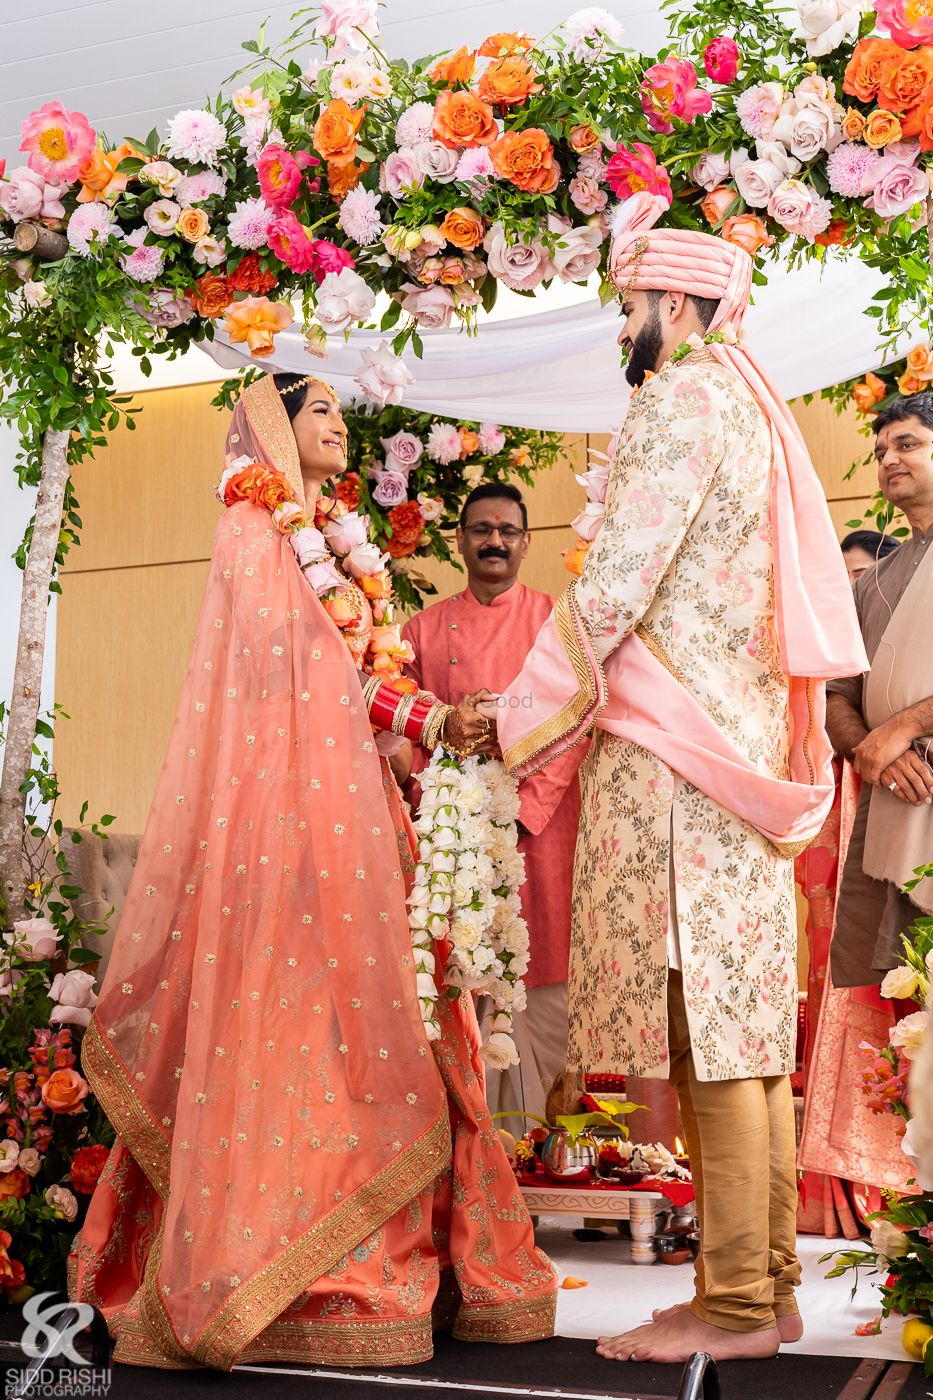 Photo From Hindu wedding - By Kala Shree Regalia